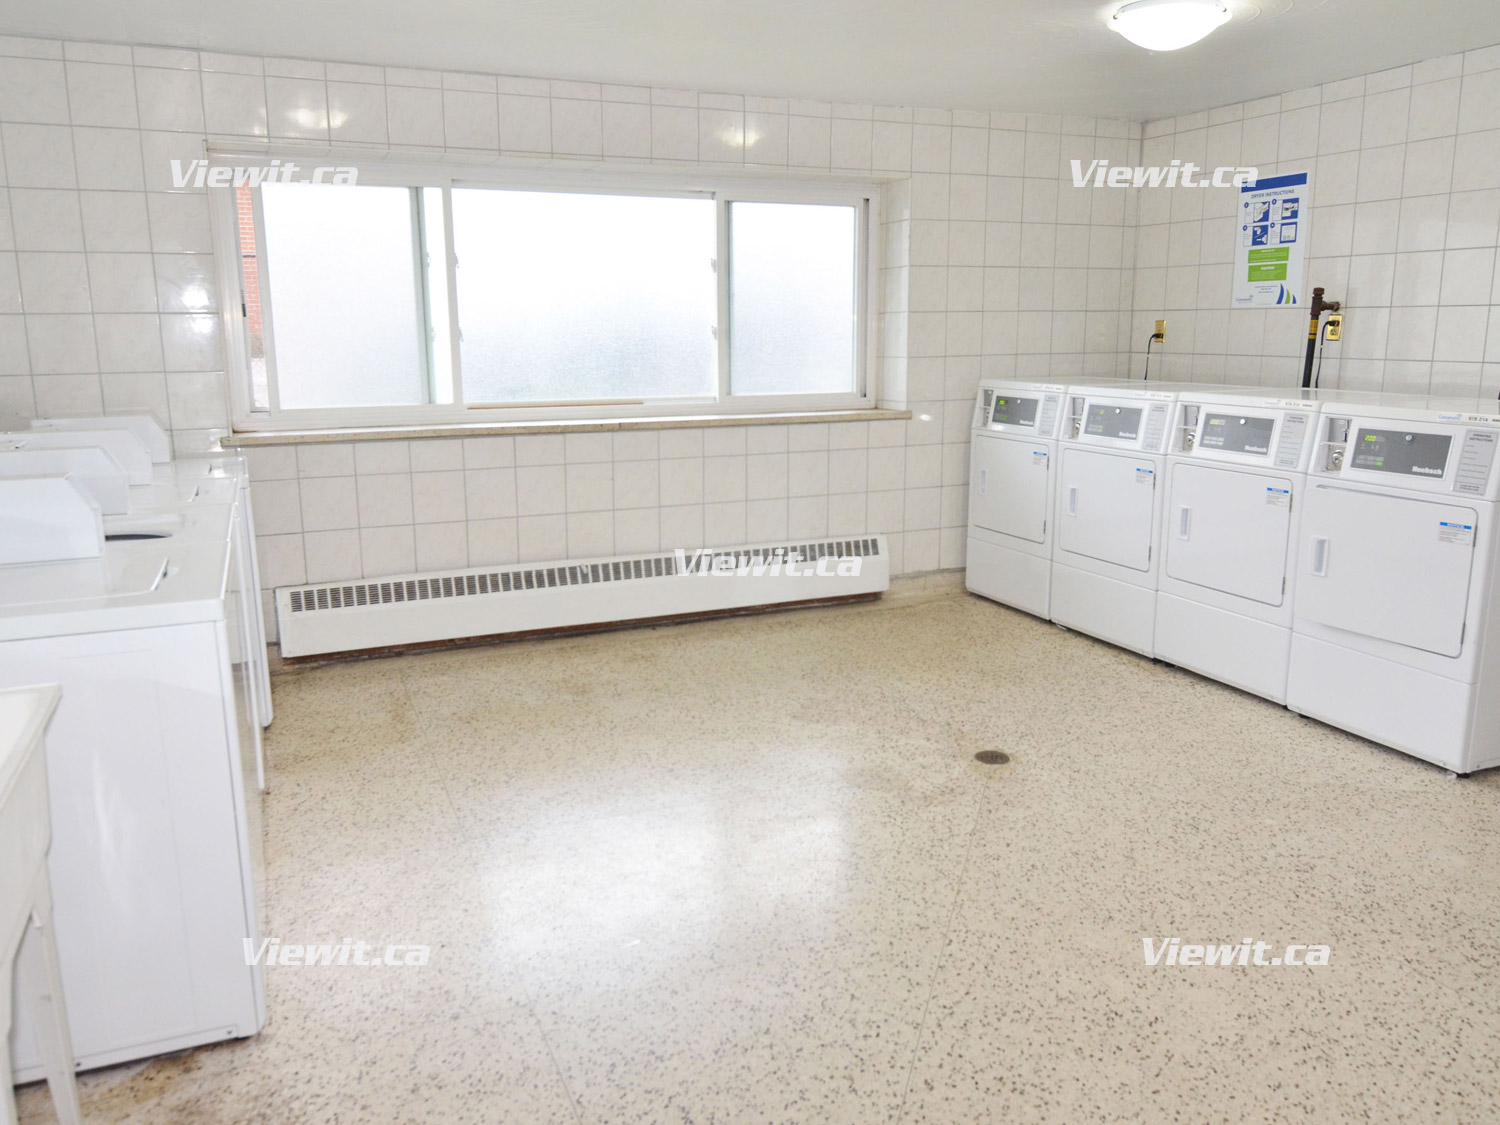 81 Willow Rd, GUELPH , ON : 1 Bedroom for rent -- GUELPH ...